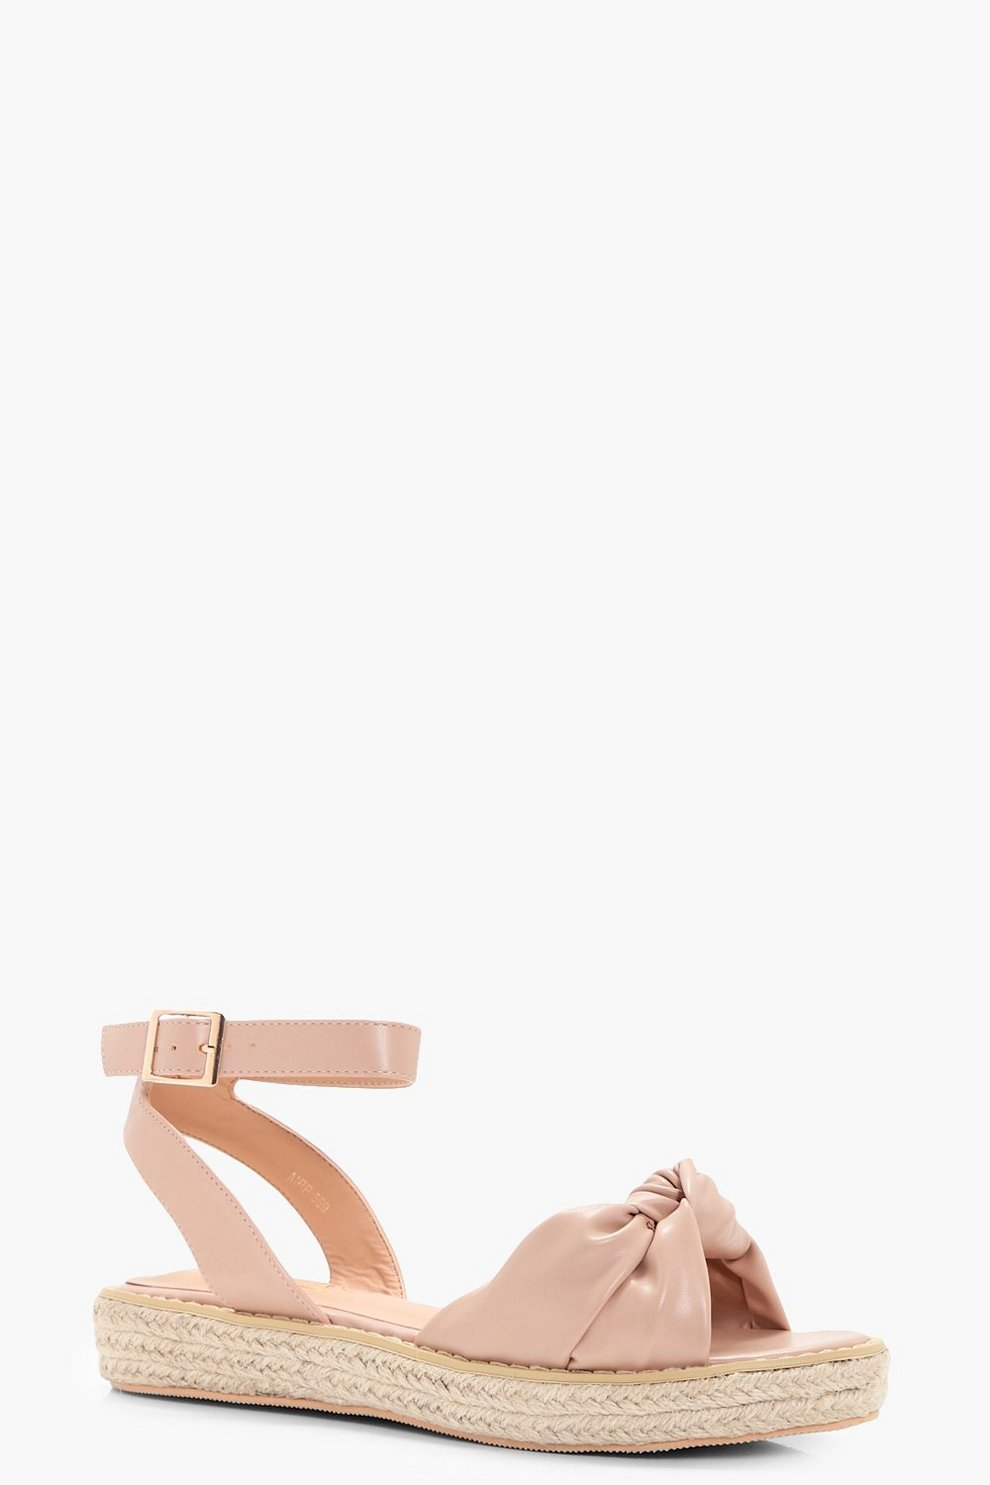 69c5e9dd7b72 Lucy Bow Front Espadrille Sandals